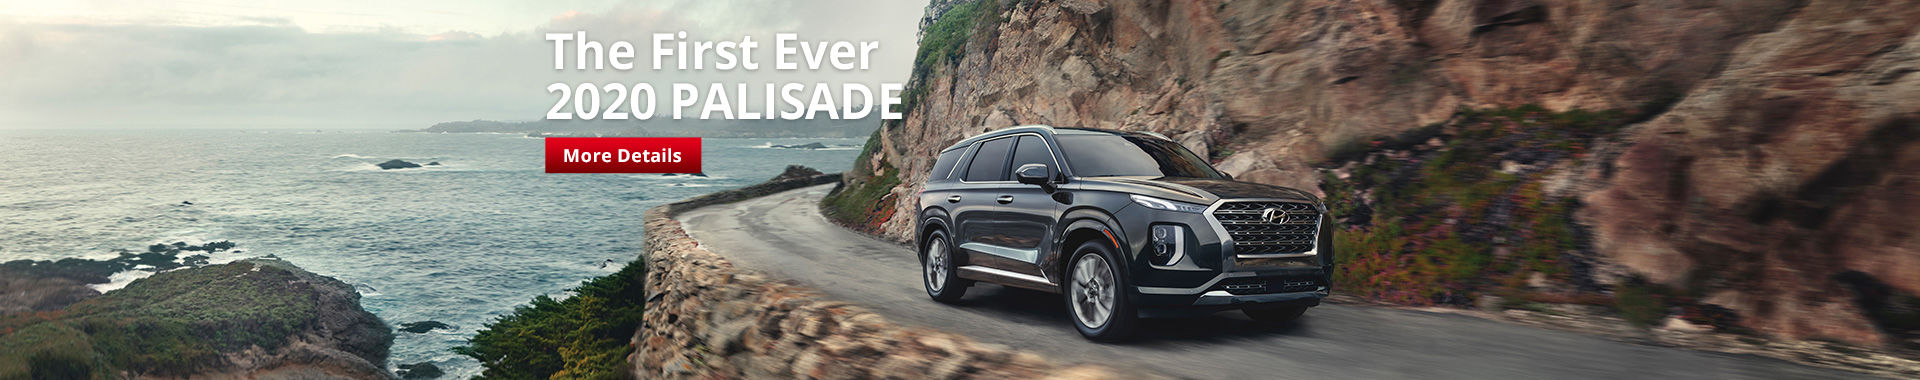 The First Ever  2020 PALISADE